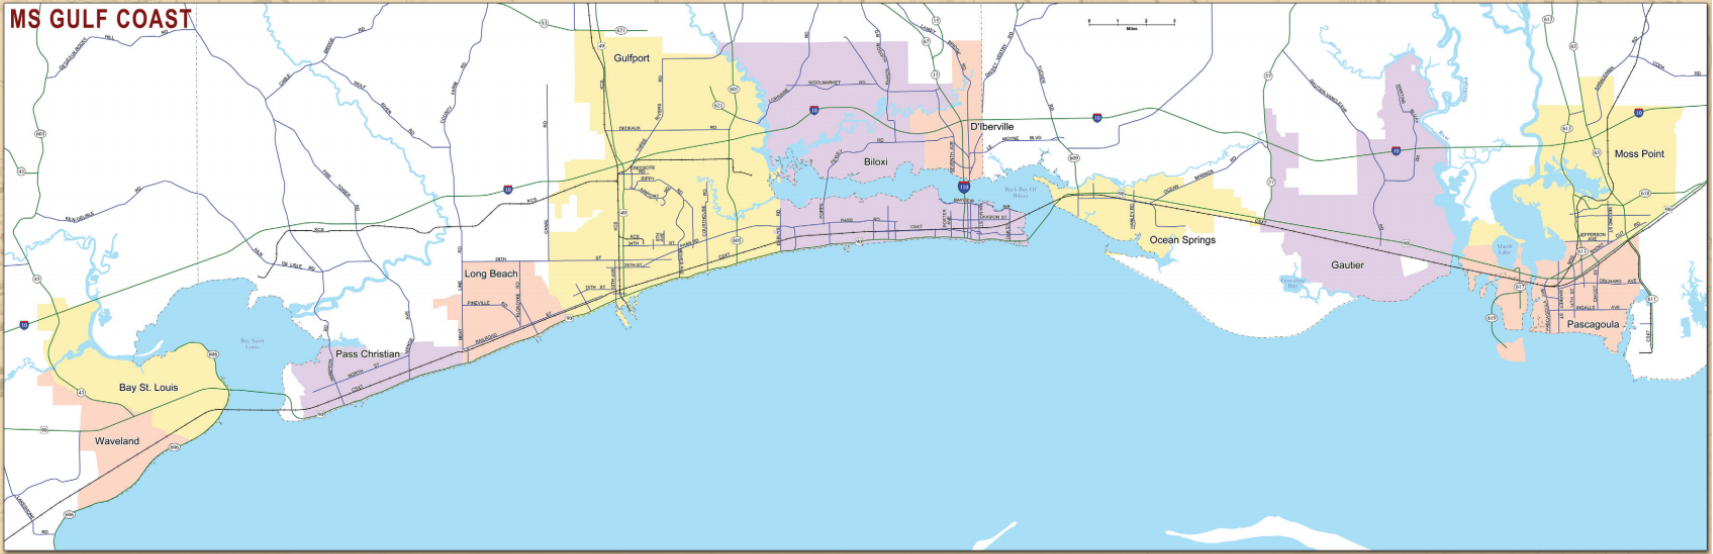 Rail Map Ms Gulf Coast Gulf Regional Planning Commission